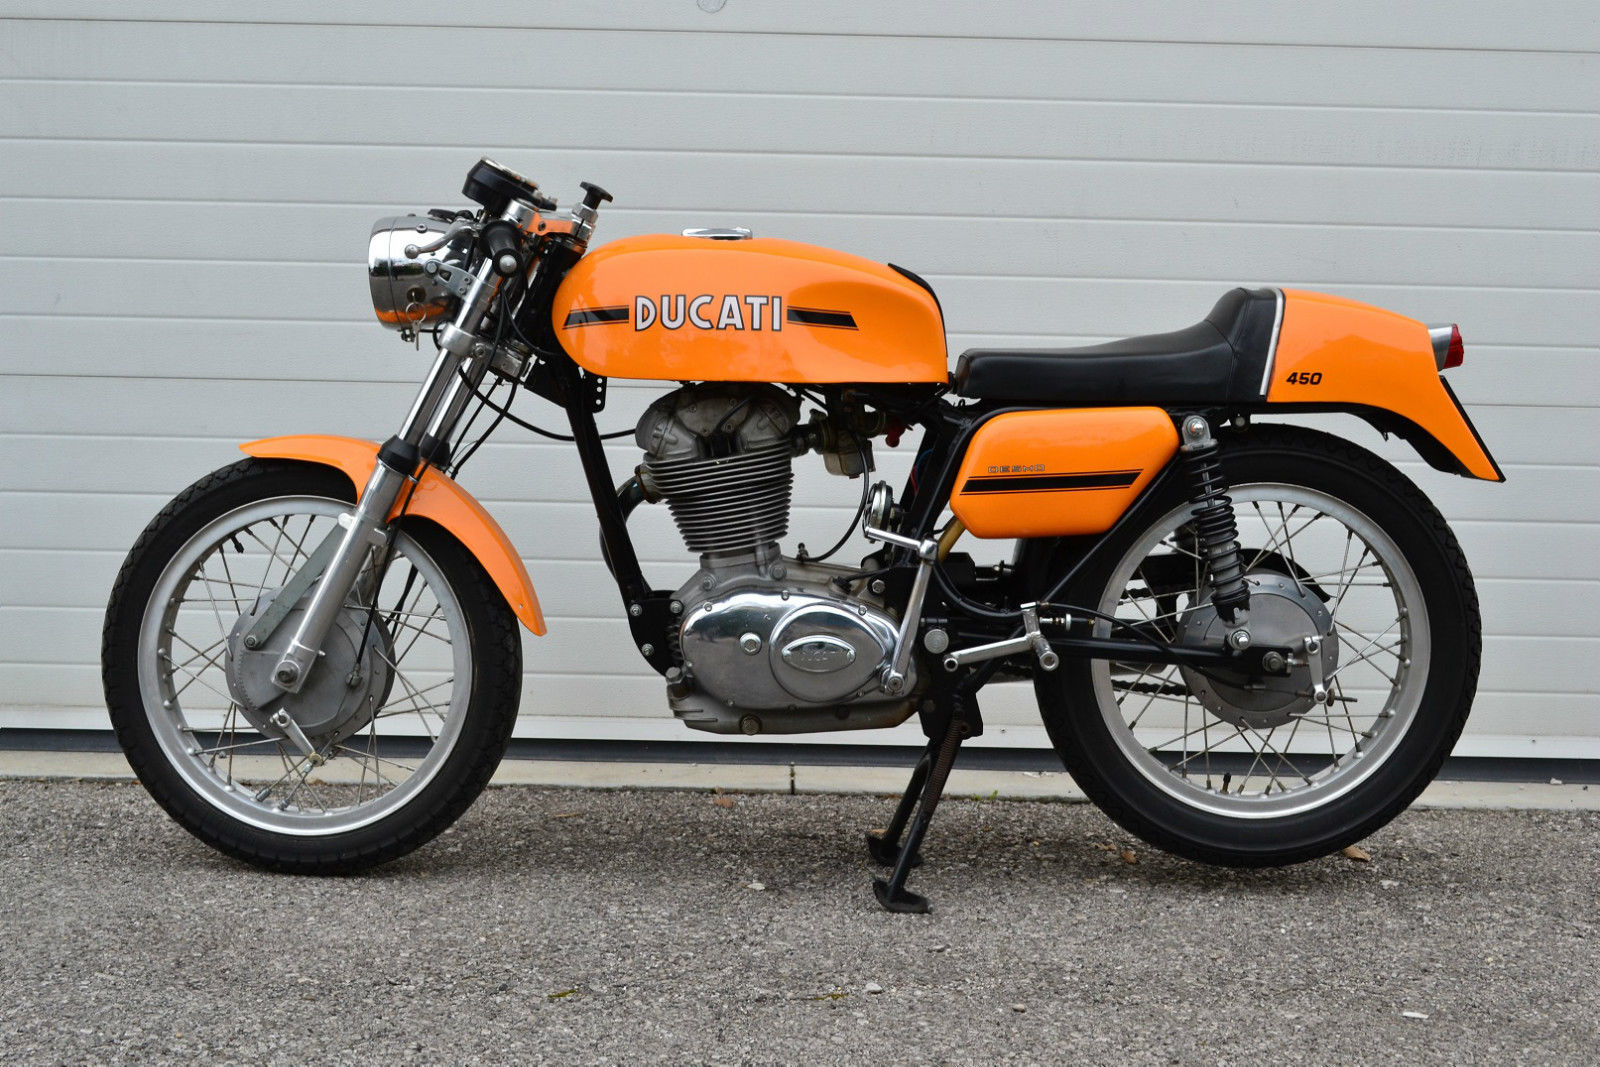 Ducati 450 Mark 3 1970 images #171188